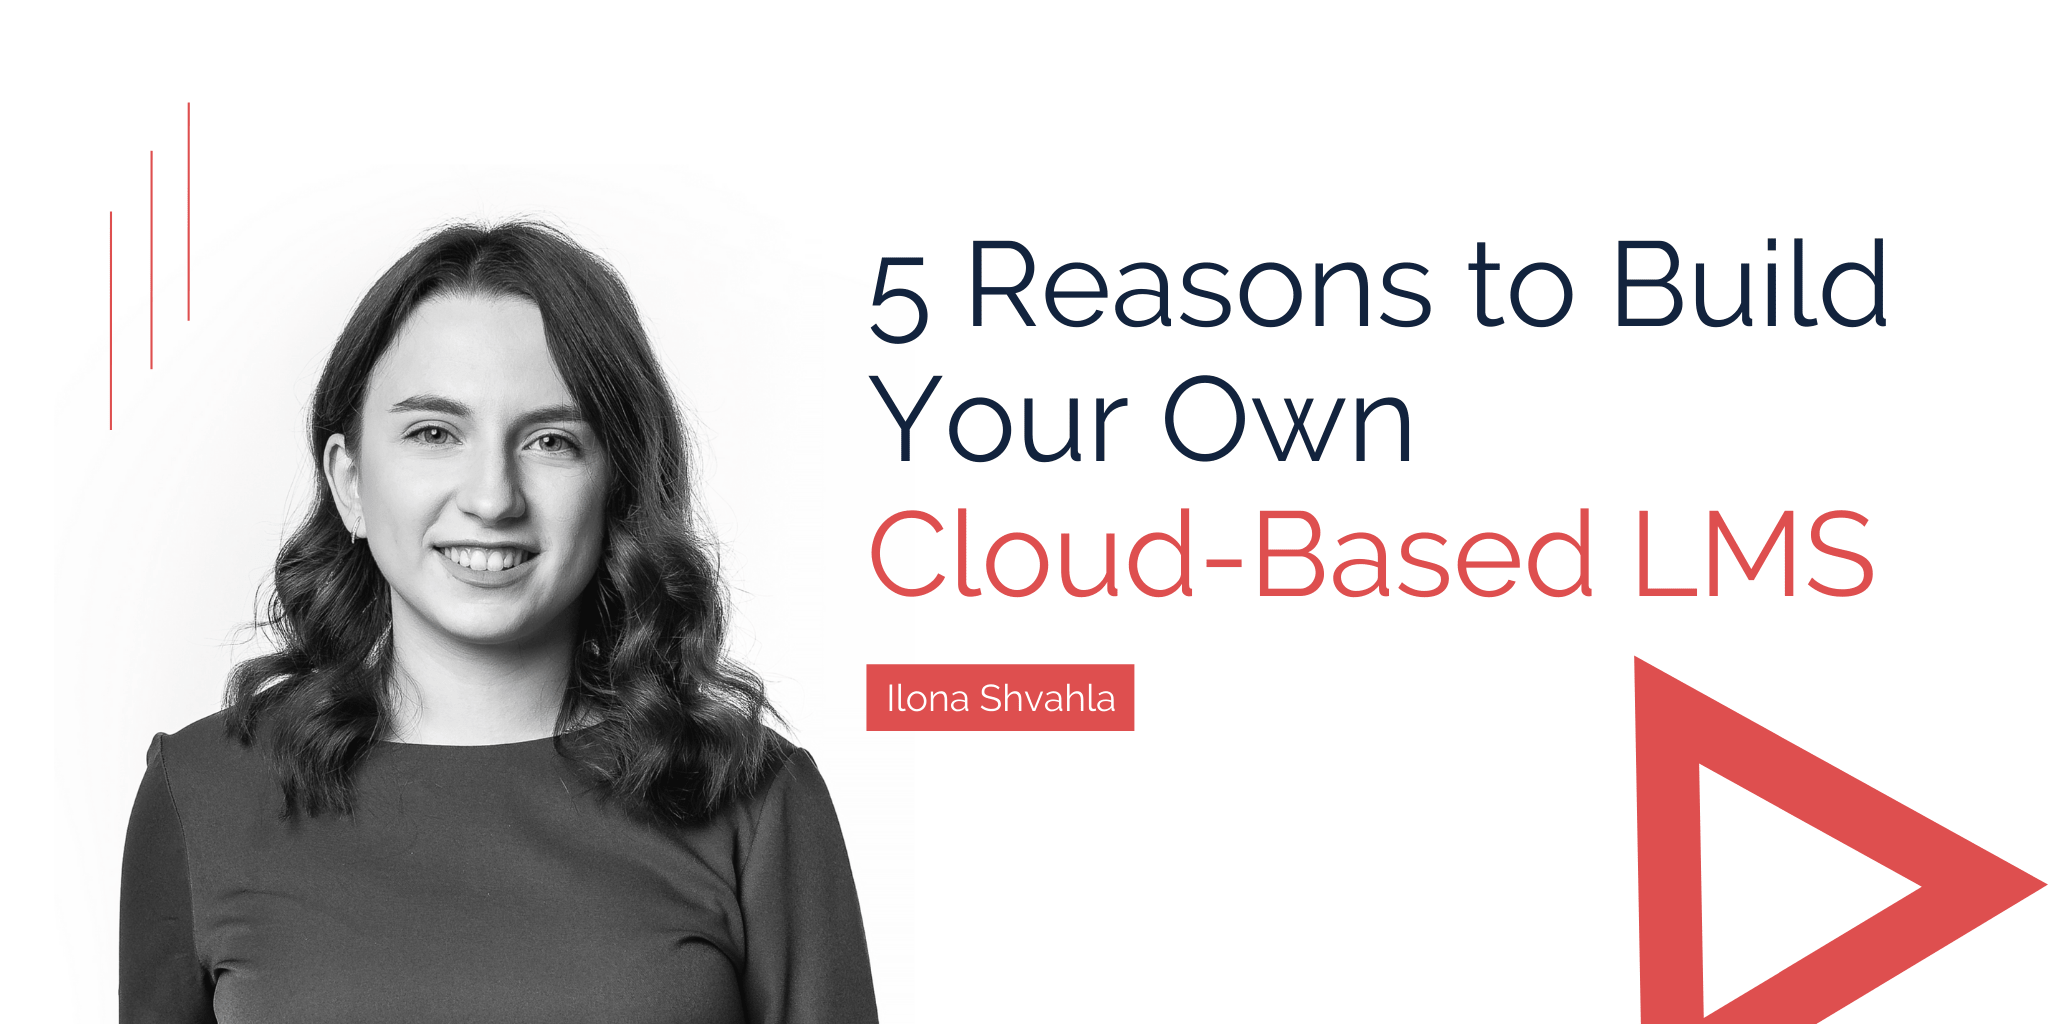 5 Reasons to Build Your Own Cloud-Based LMS